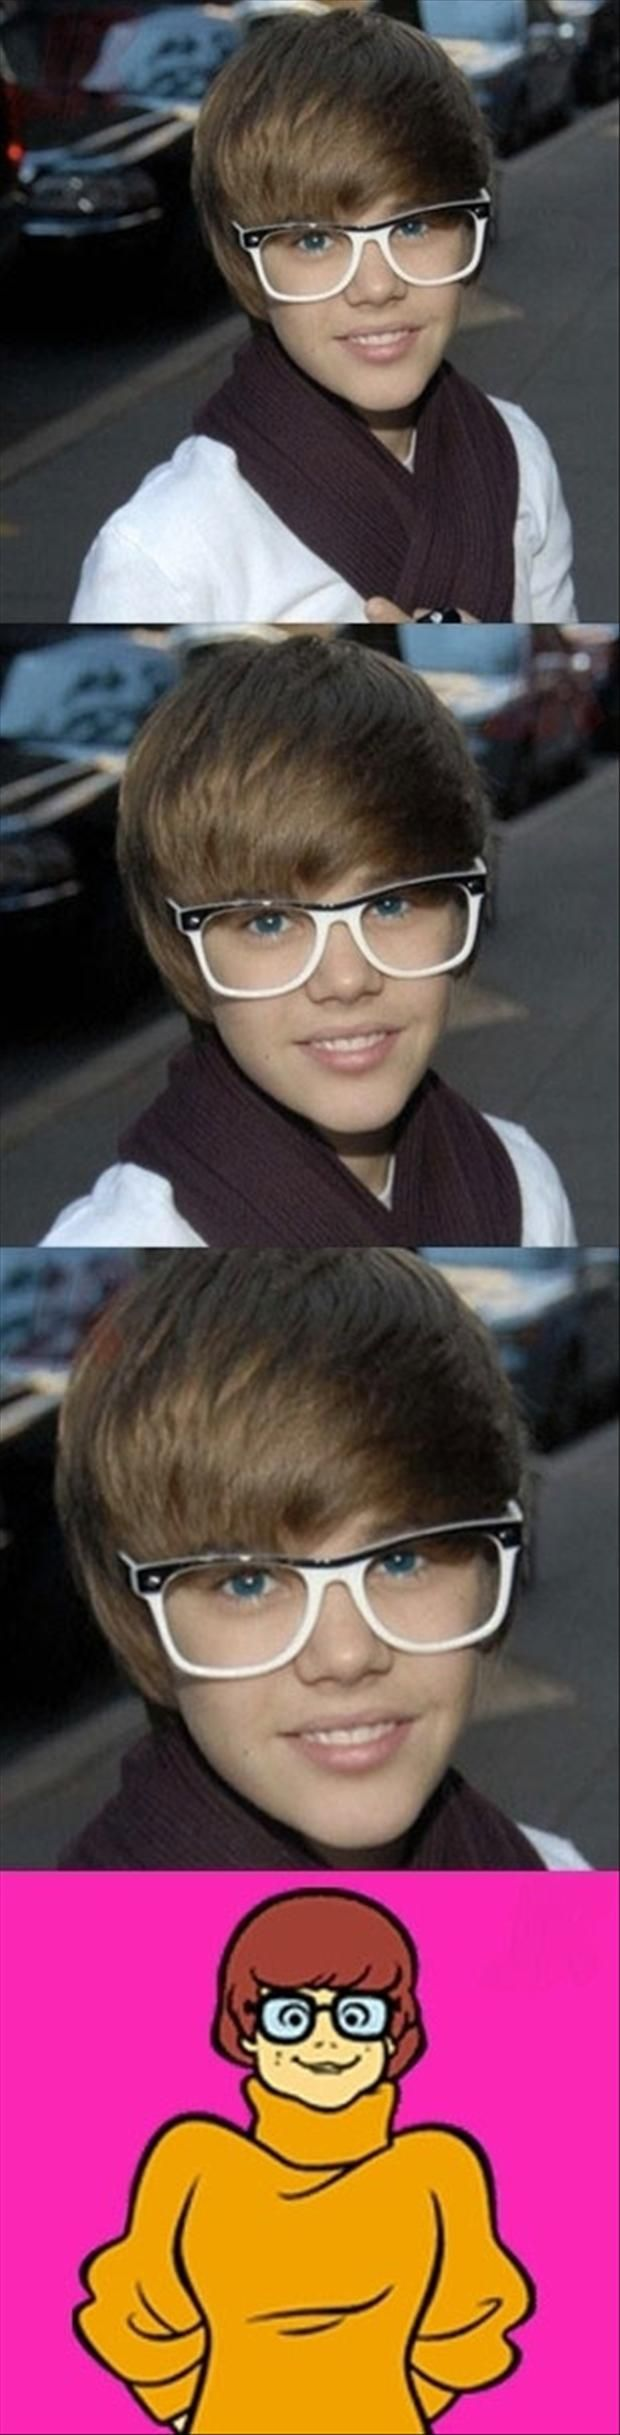 justin beiber looks like velma from scooby doo